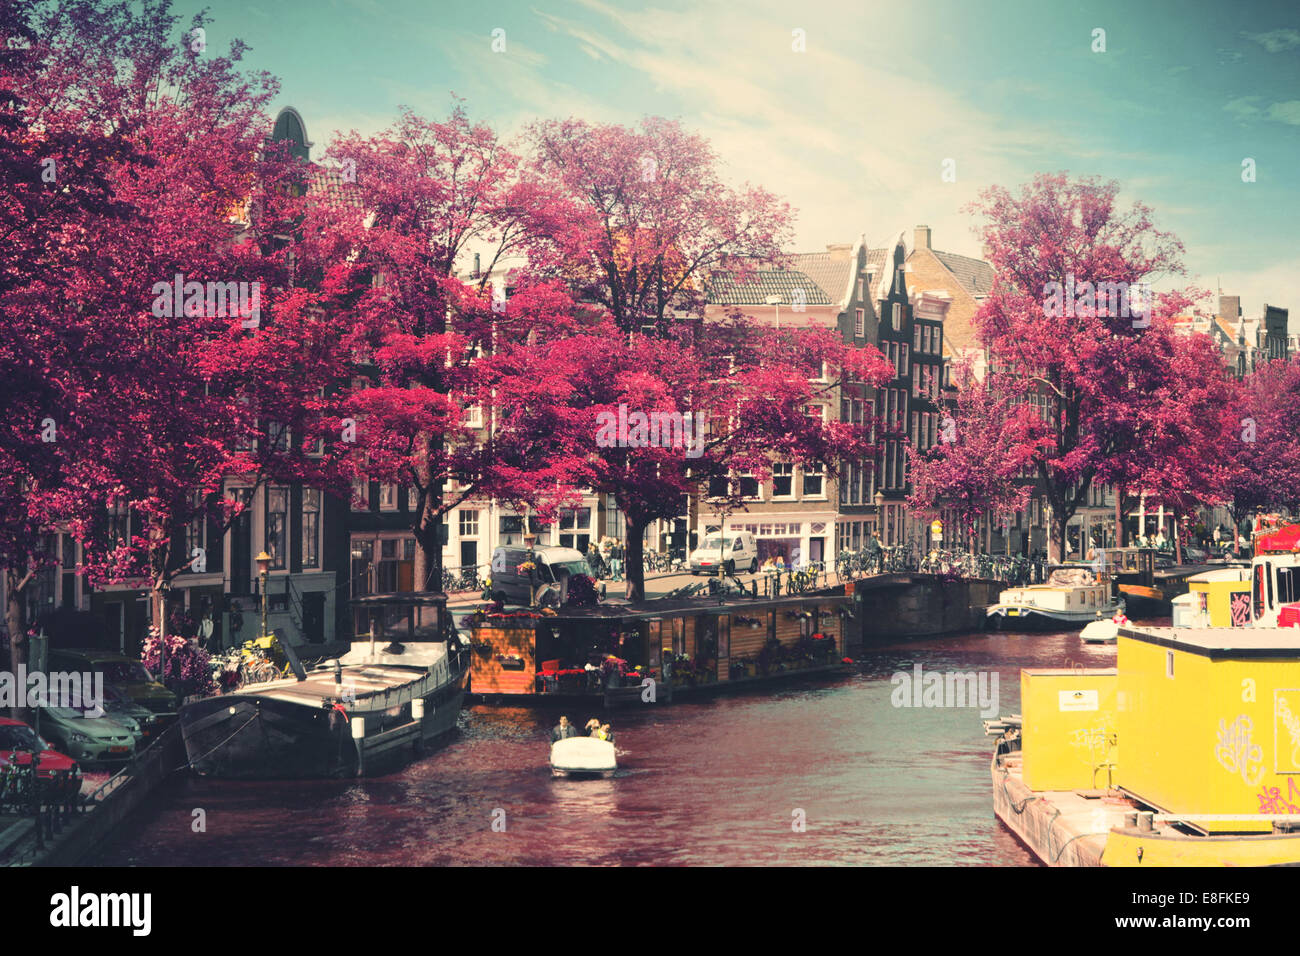 Holland, Amsterdam, Houseboats on canal - Stock Image